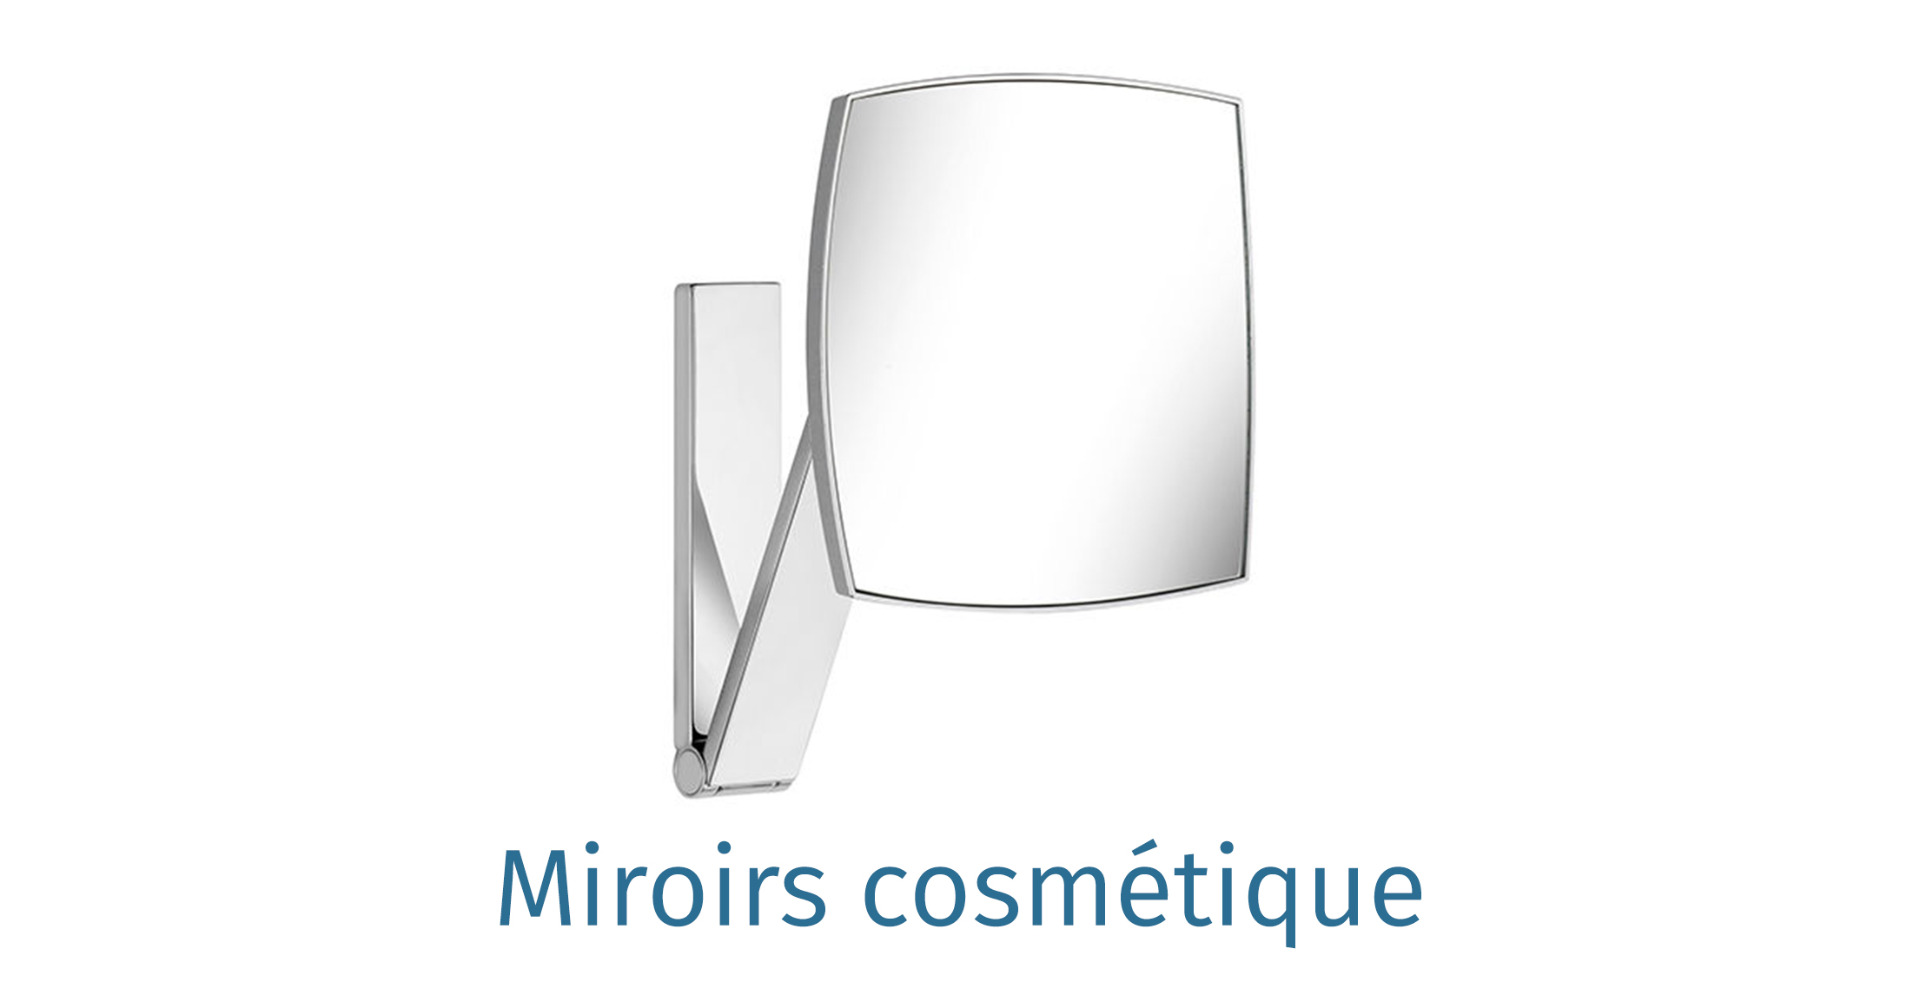 Miroirs cosmetique